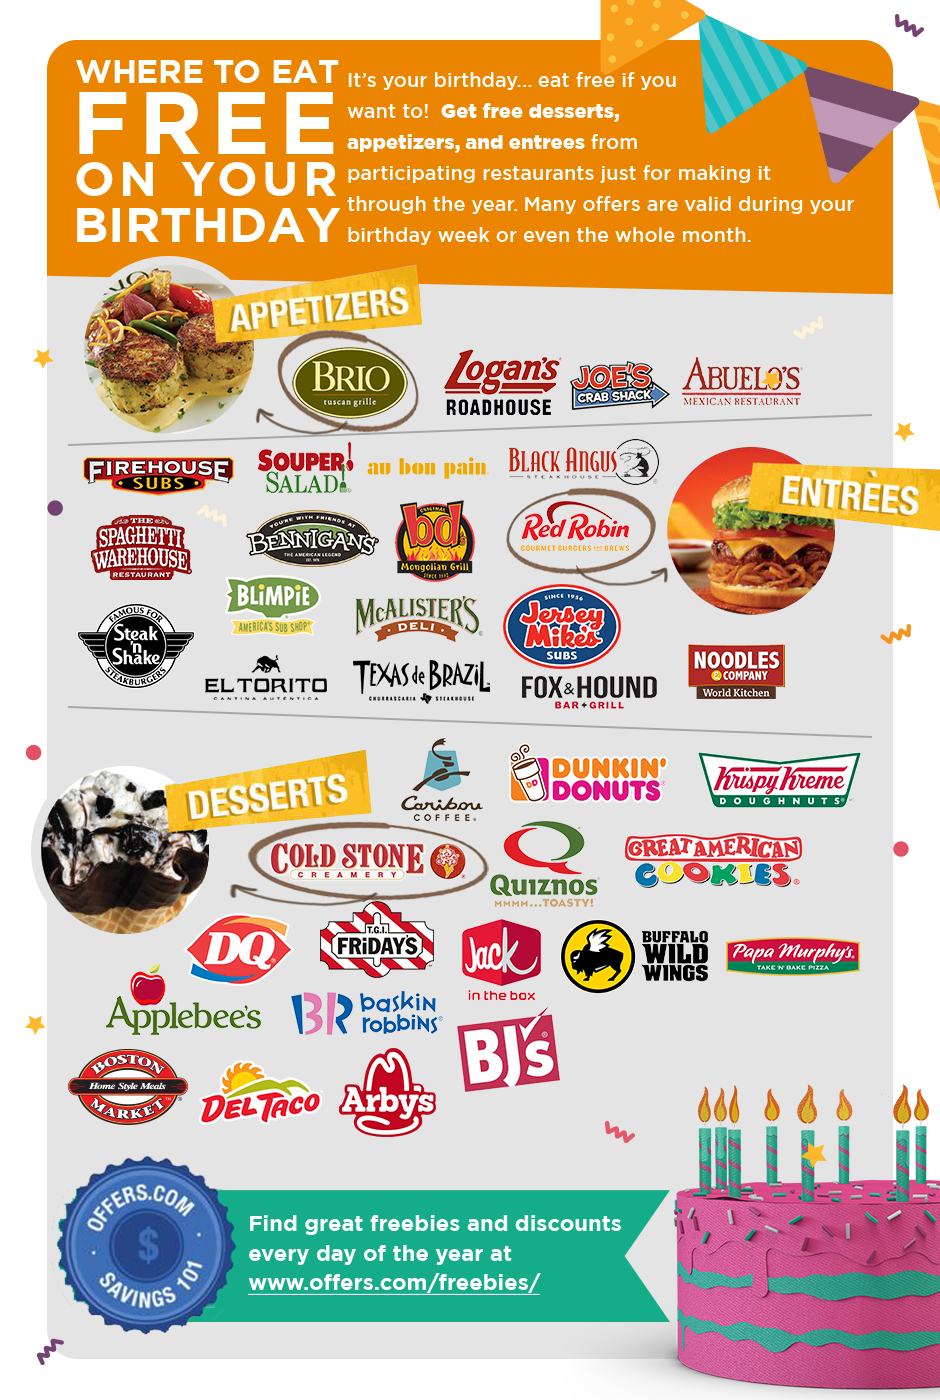 Free Birthday Meals 2019 - Restaurant W/ Free Food On Your Birthday - Free Printable Coupons For Bojangles